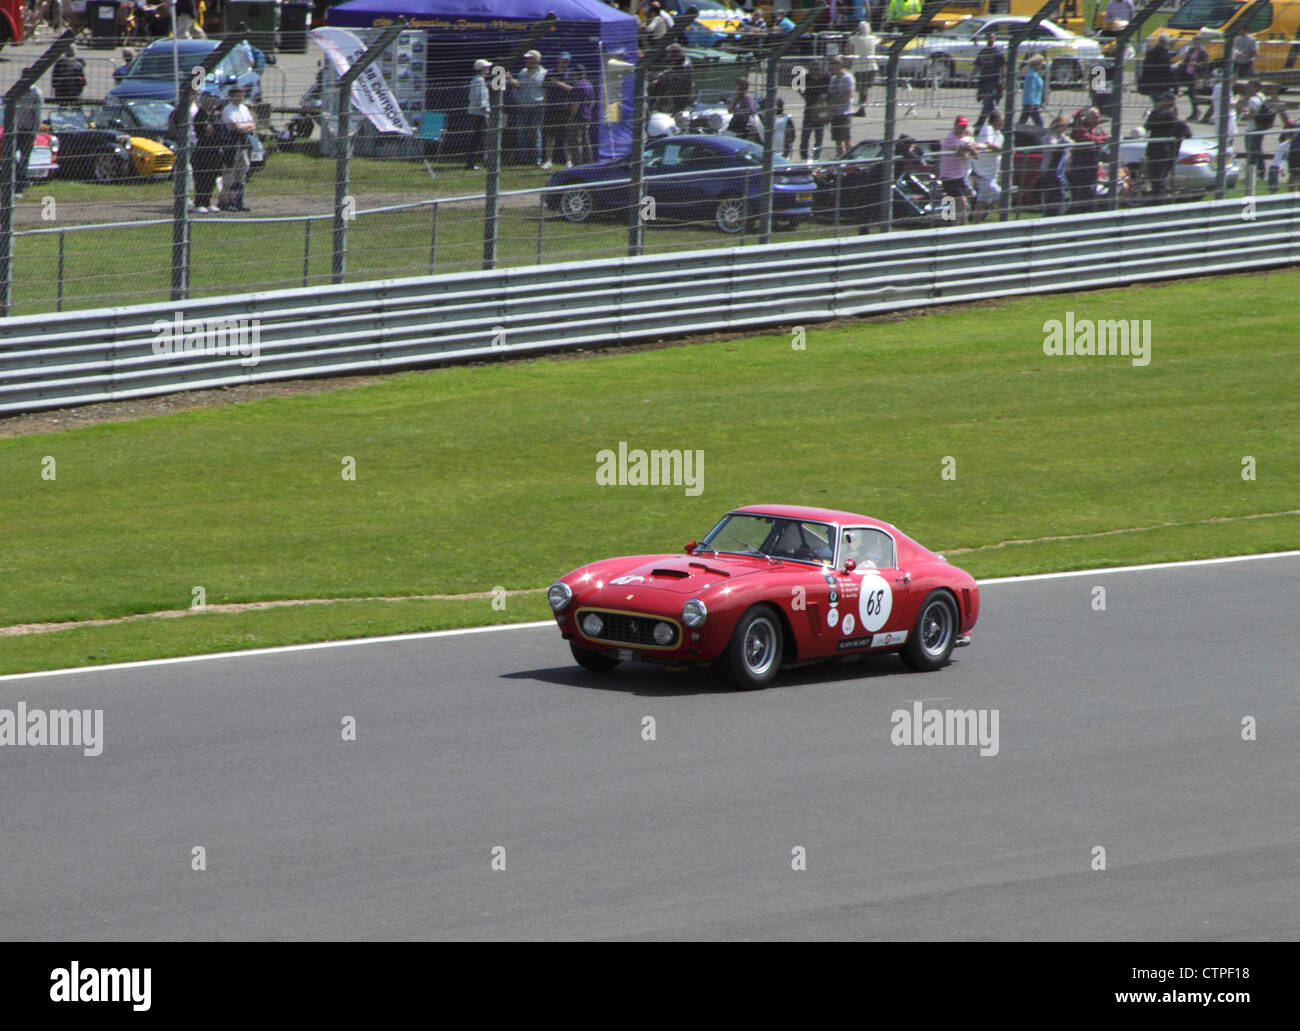 1960 Ferrari 250 SWB at RAC Tourist Trophy for Historic Cars (pre-63 GT) Silverstone Classic July 22 2012 - Stock Image